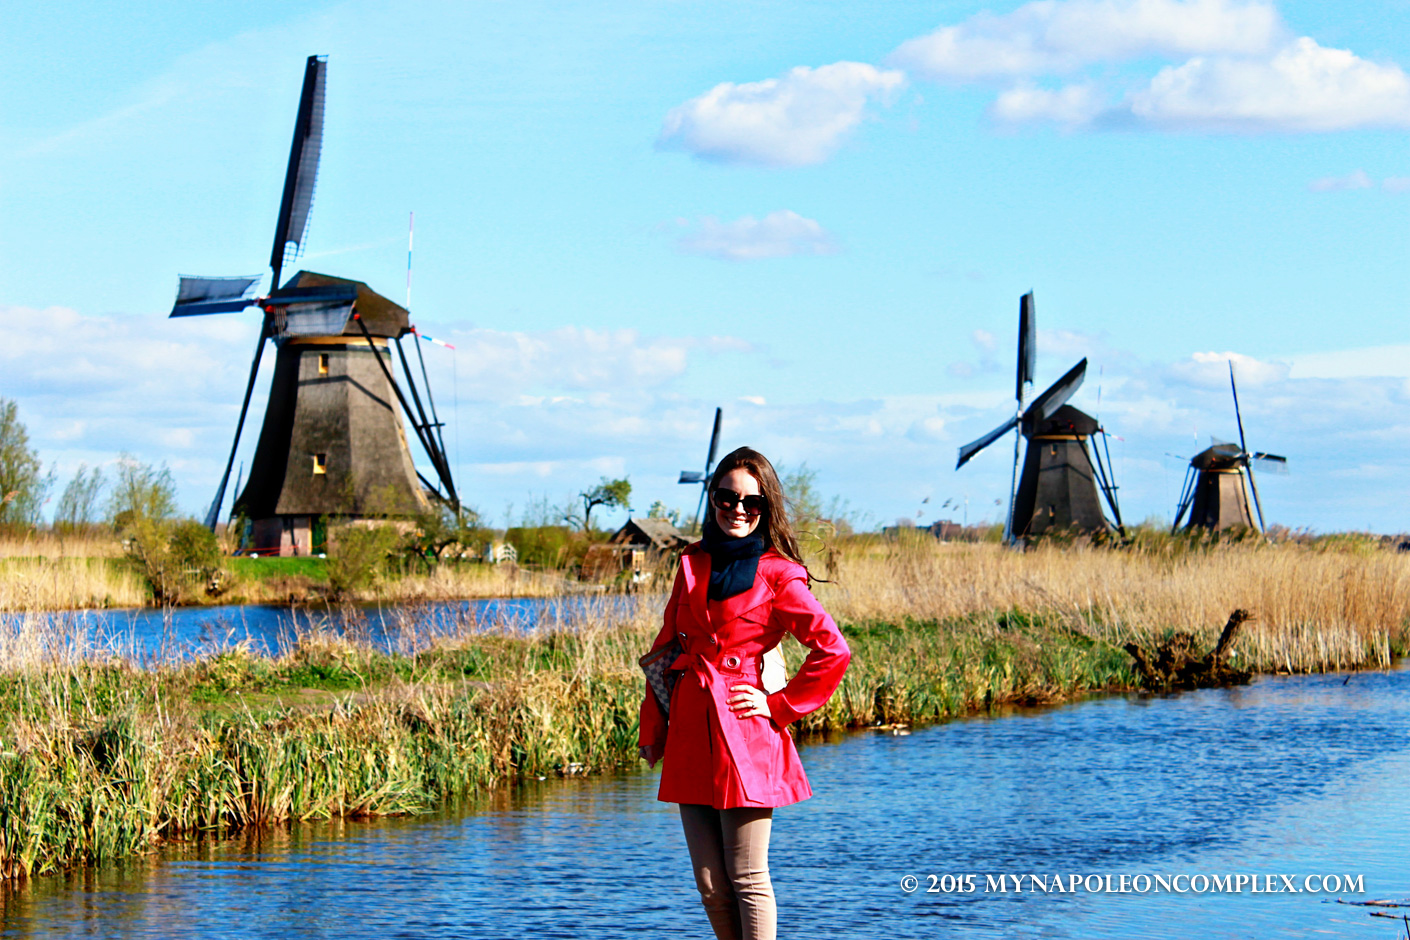 Kinderdijk Windmills A World Heritage Site Of The